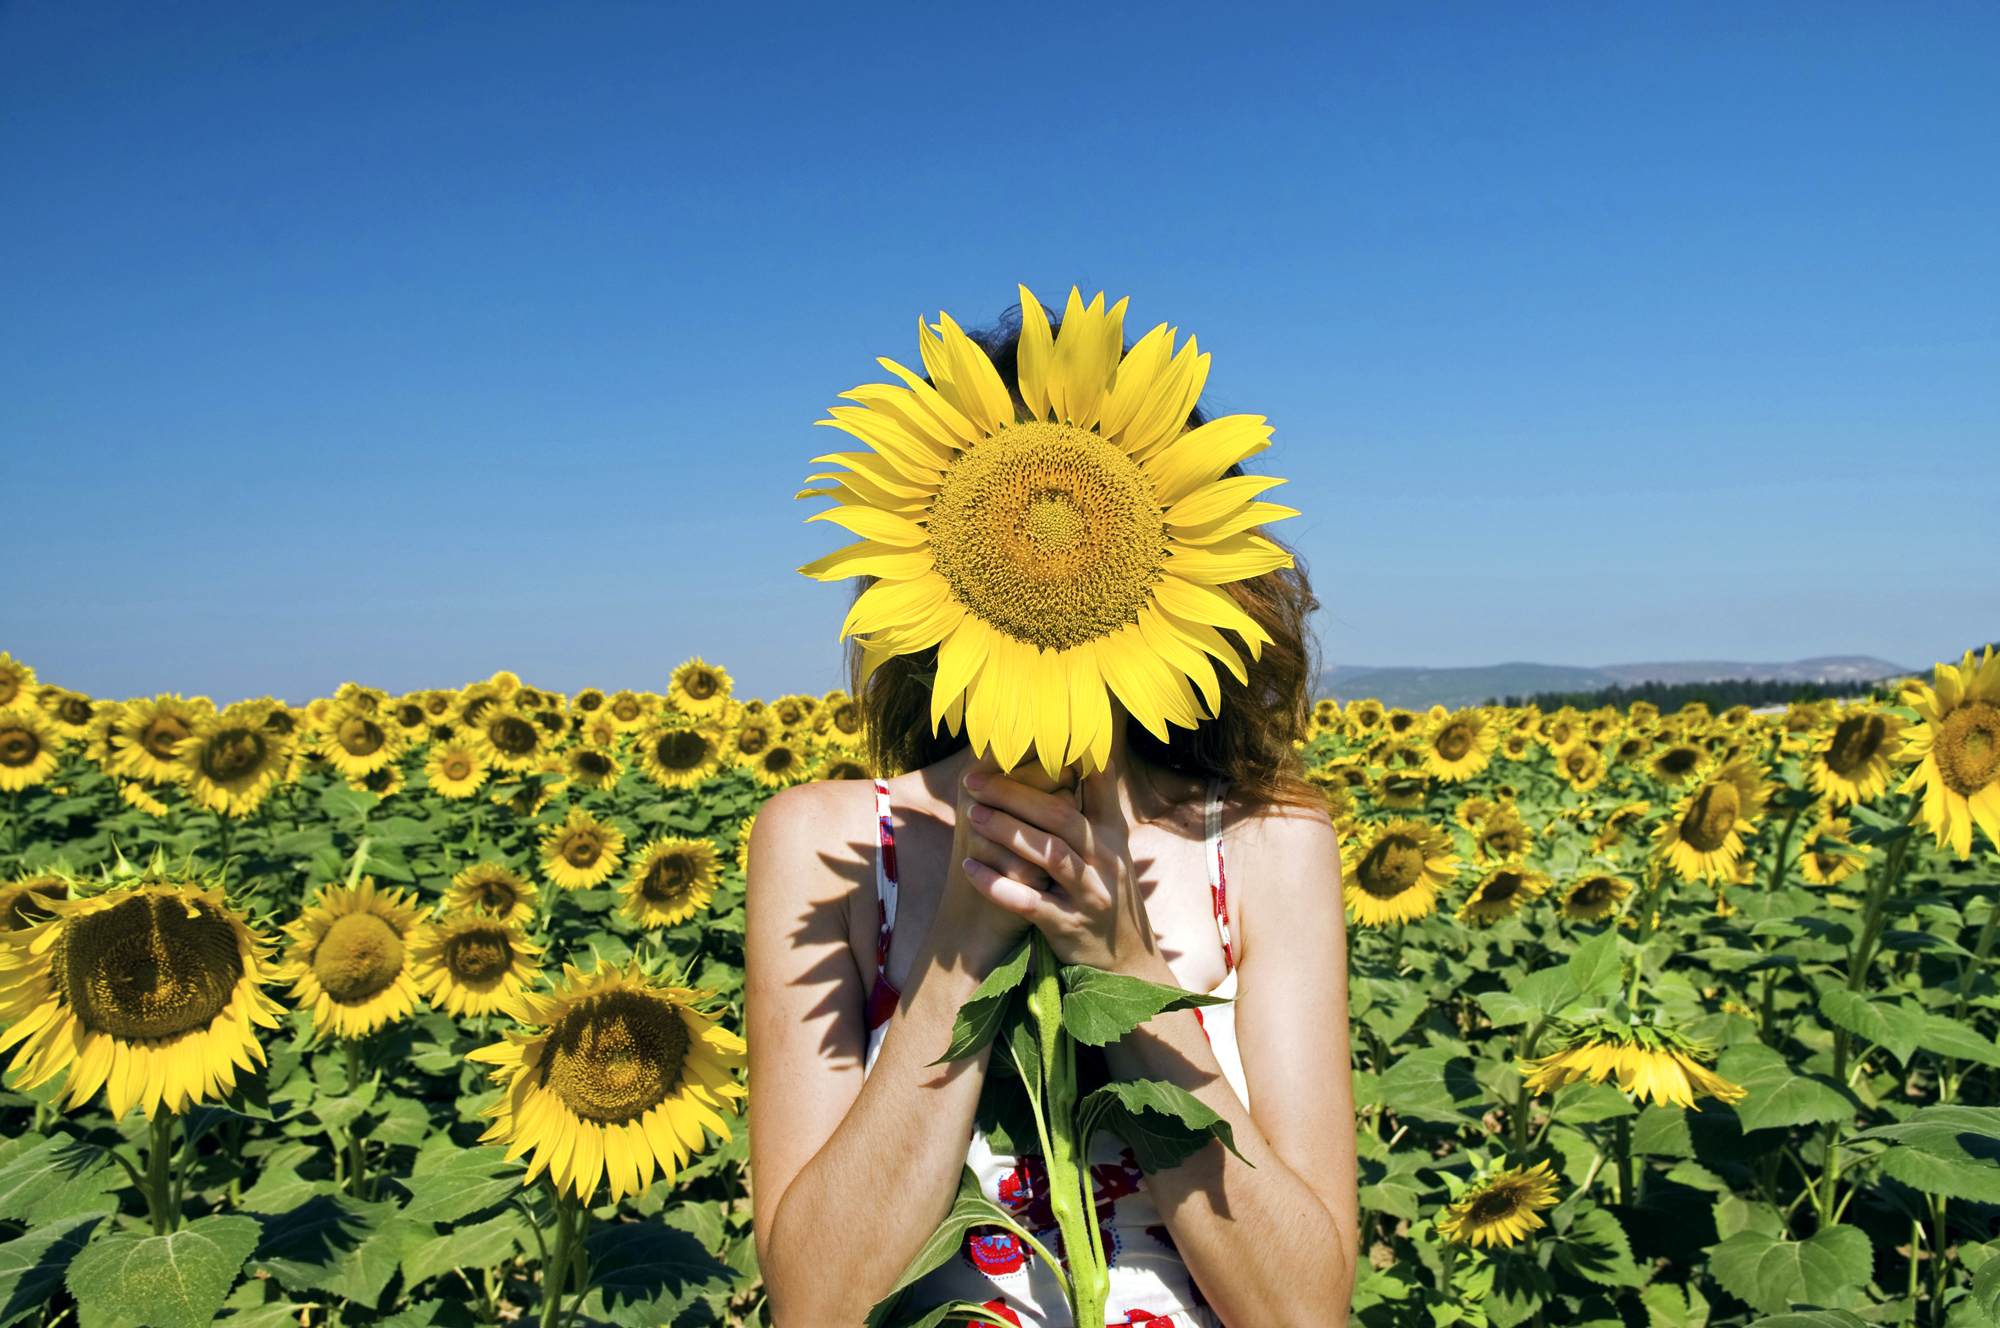 woman-sunflower-allergy-face